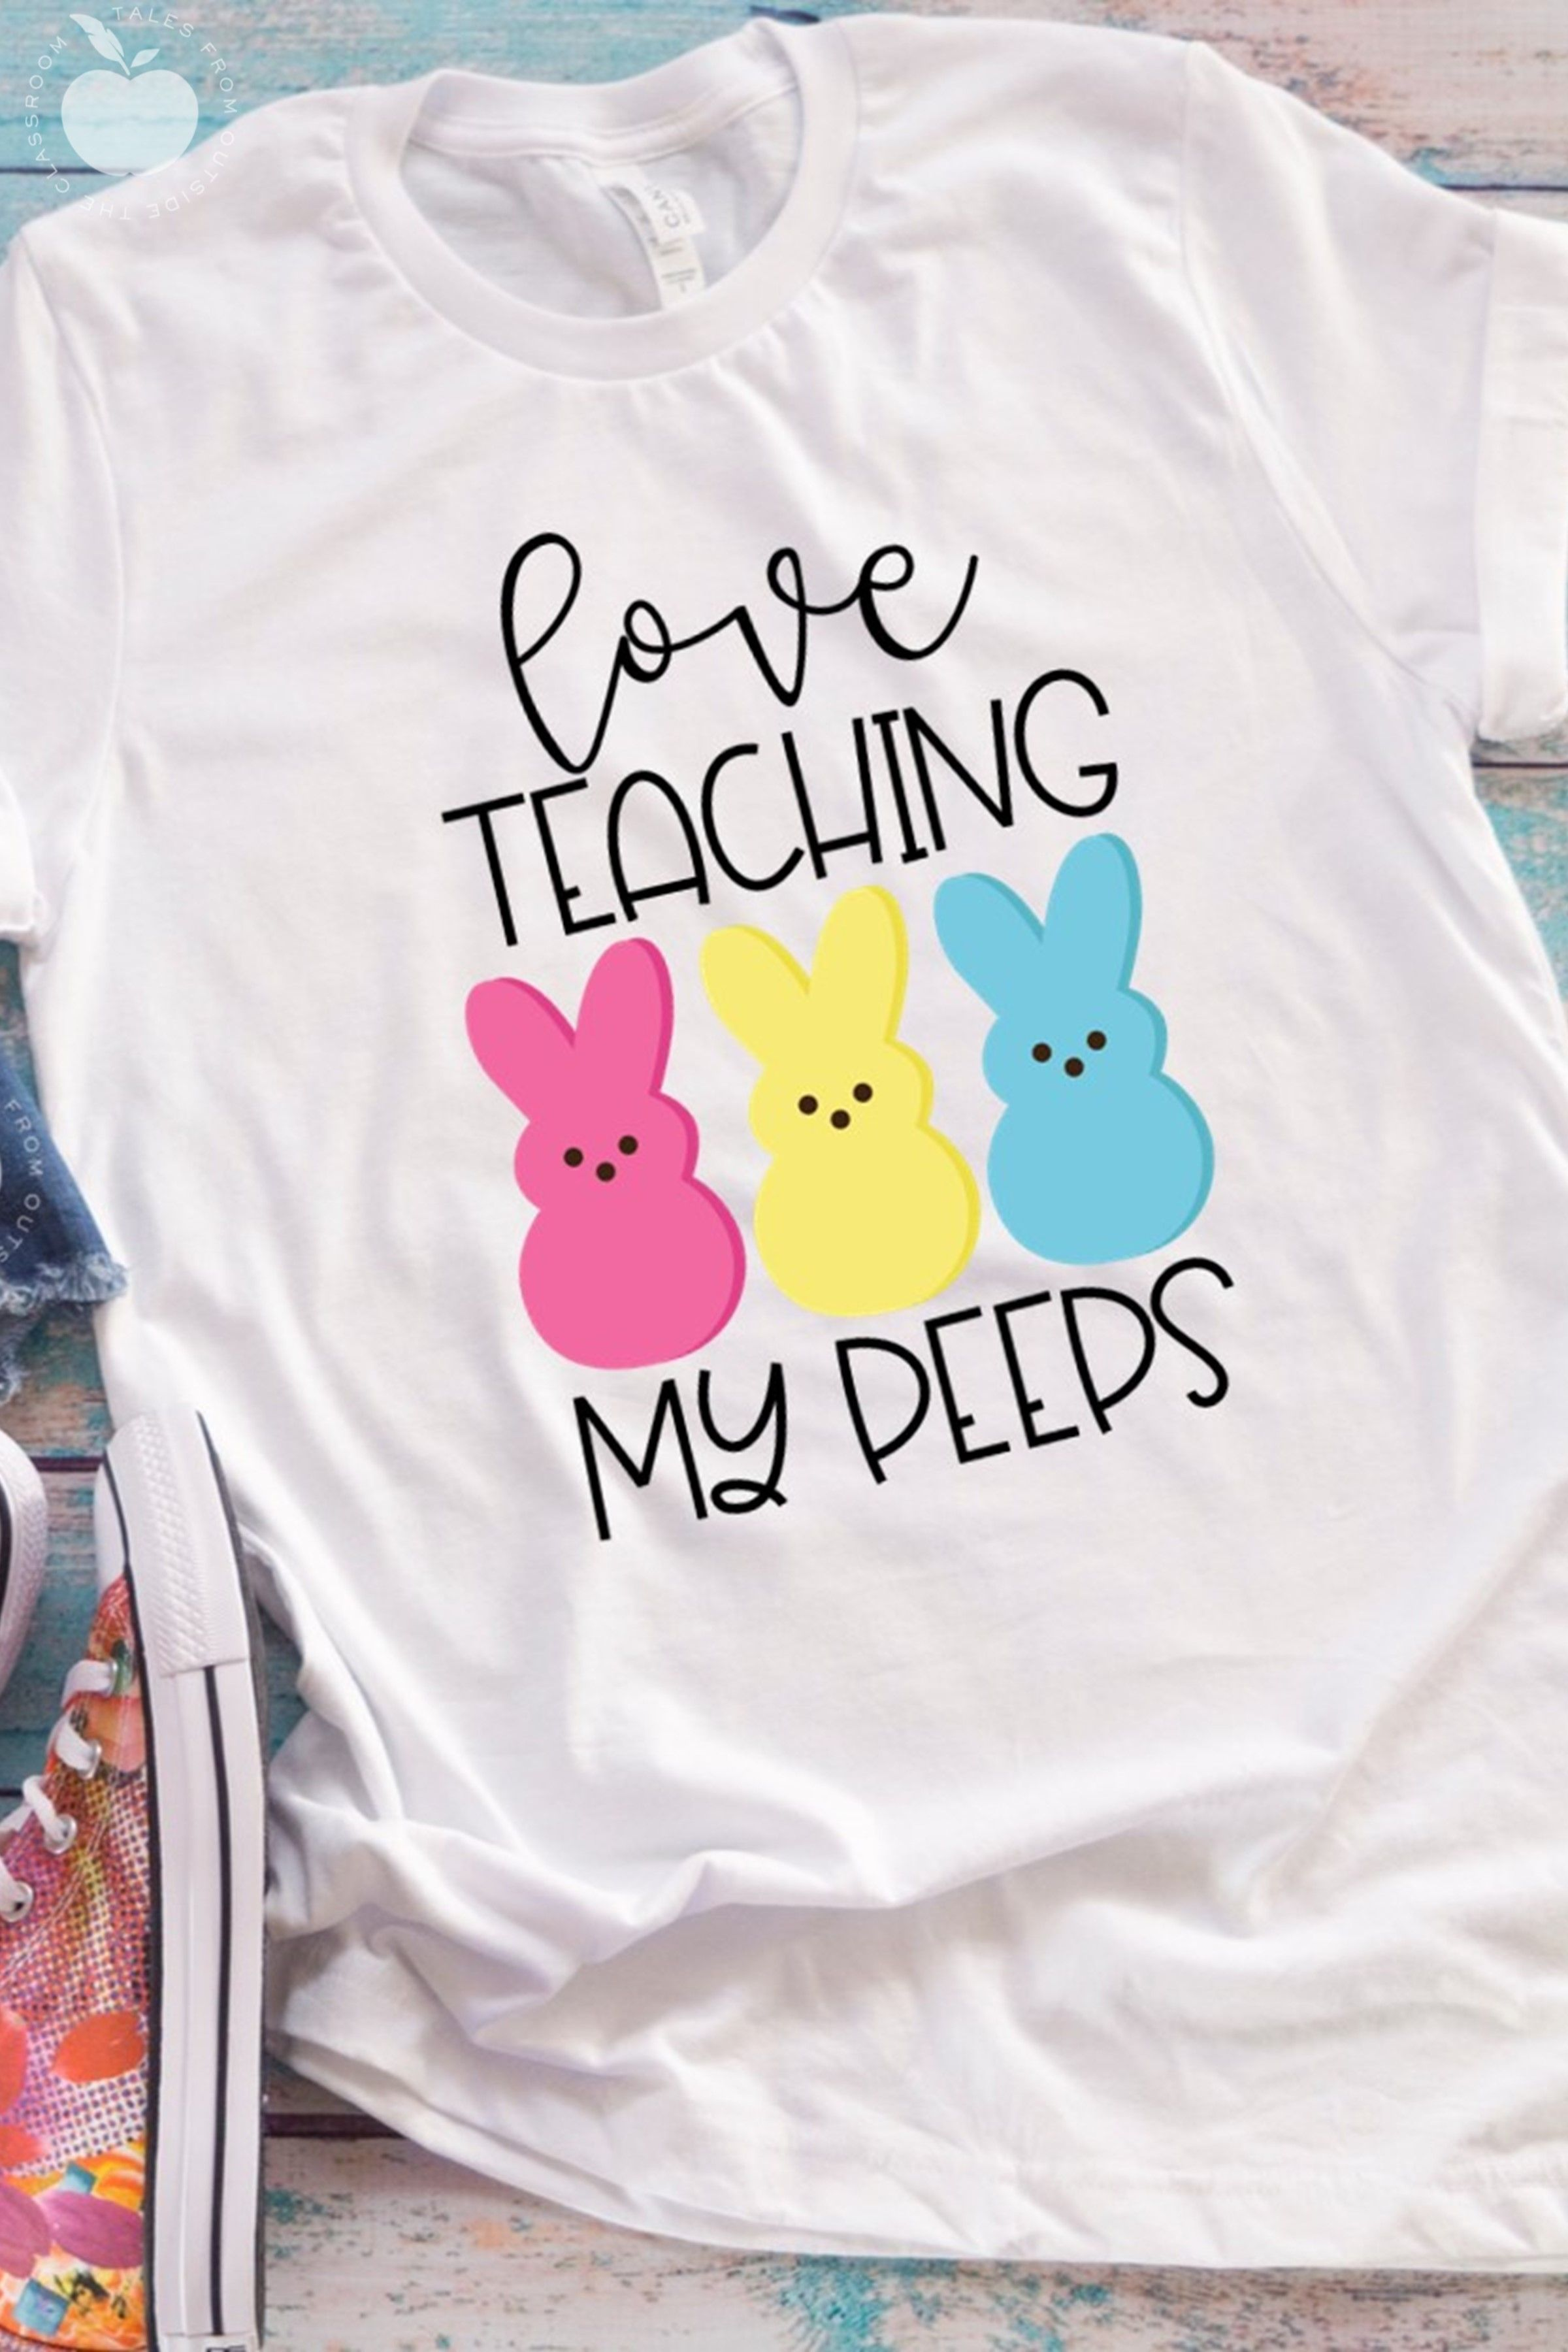 Special Ed Teacher Of The Most Awesome Peeps Tshirt Gift Idea For Youth Boy Girl Men Women Birthday Party Teen Matching Squad Easter Day